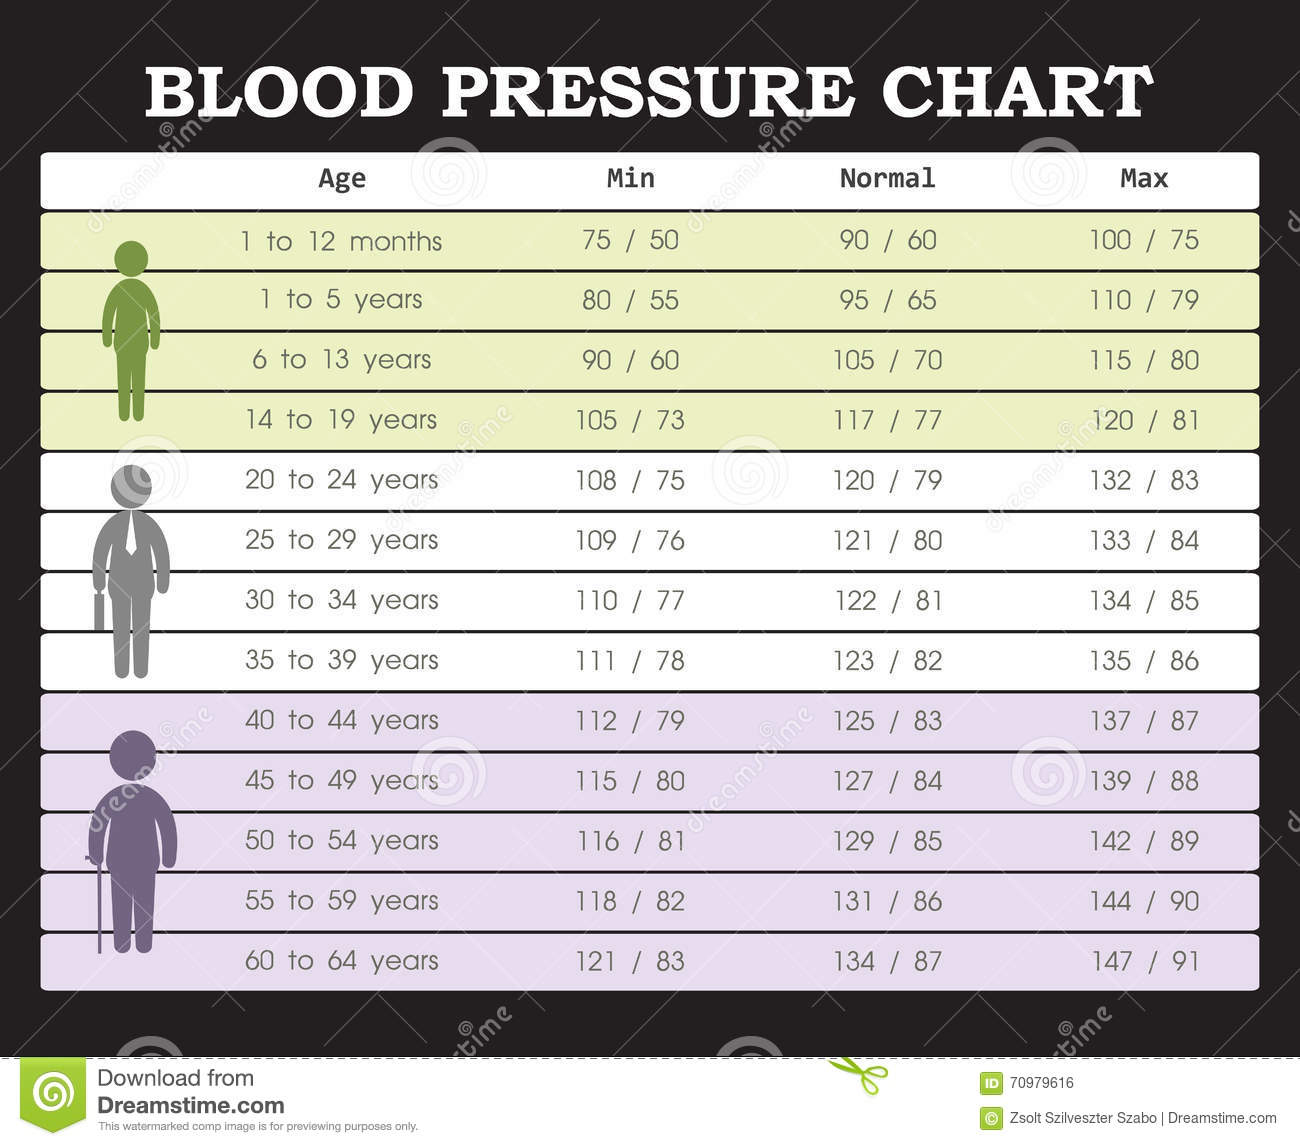 blood pressure chart by age pdf